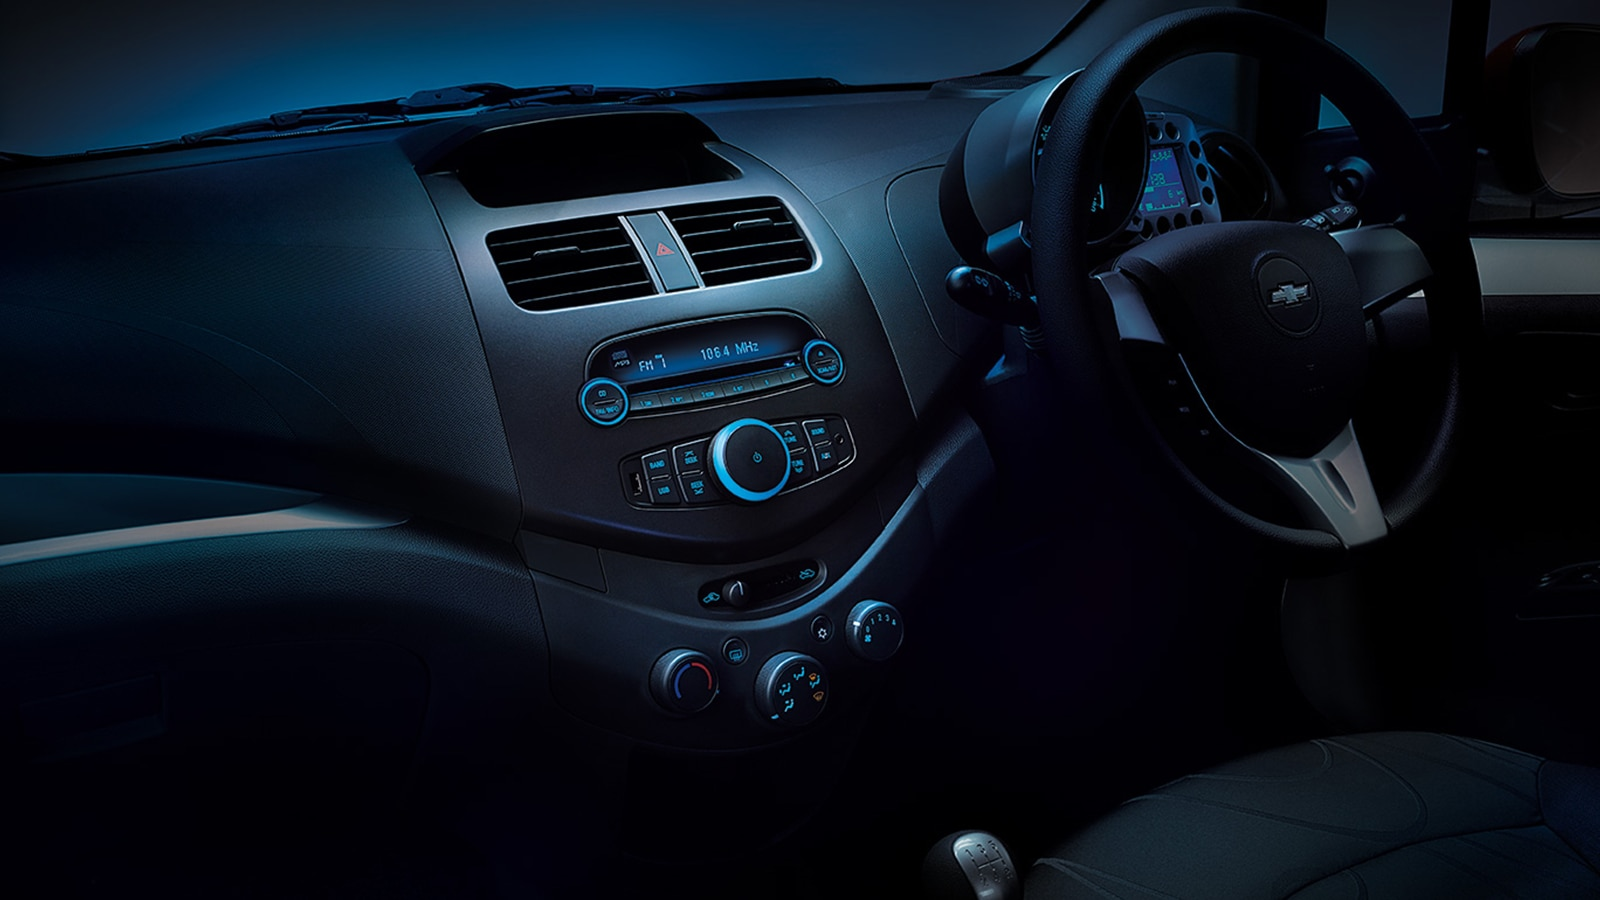 Chevrolet Beat Interior Images Gallery Chevrolet India